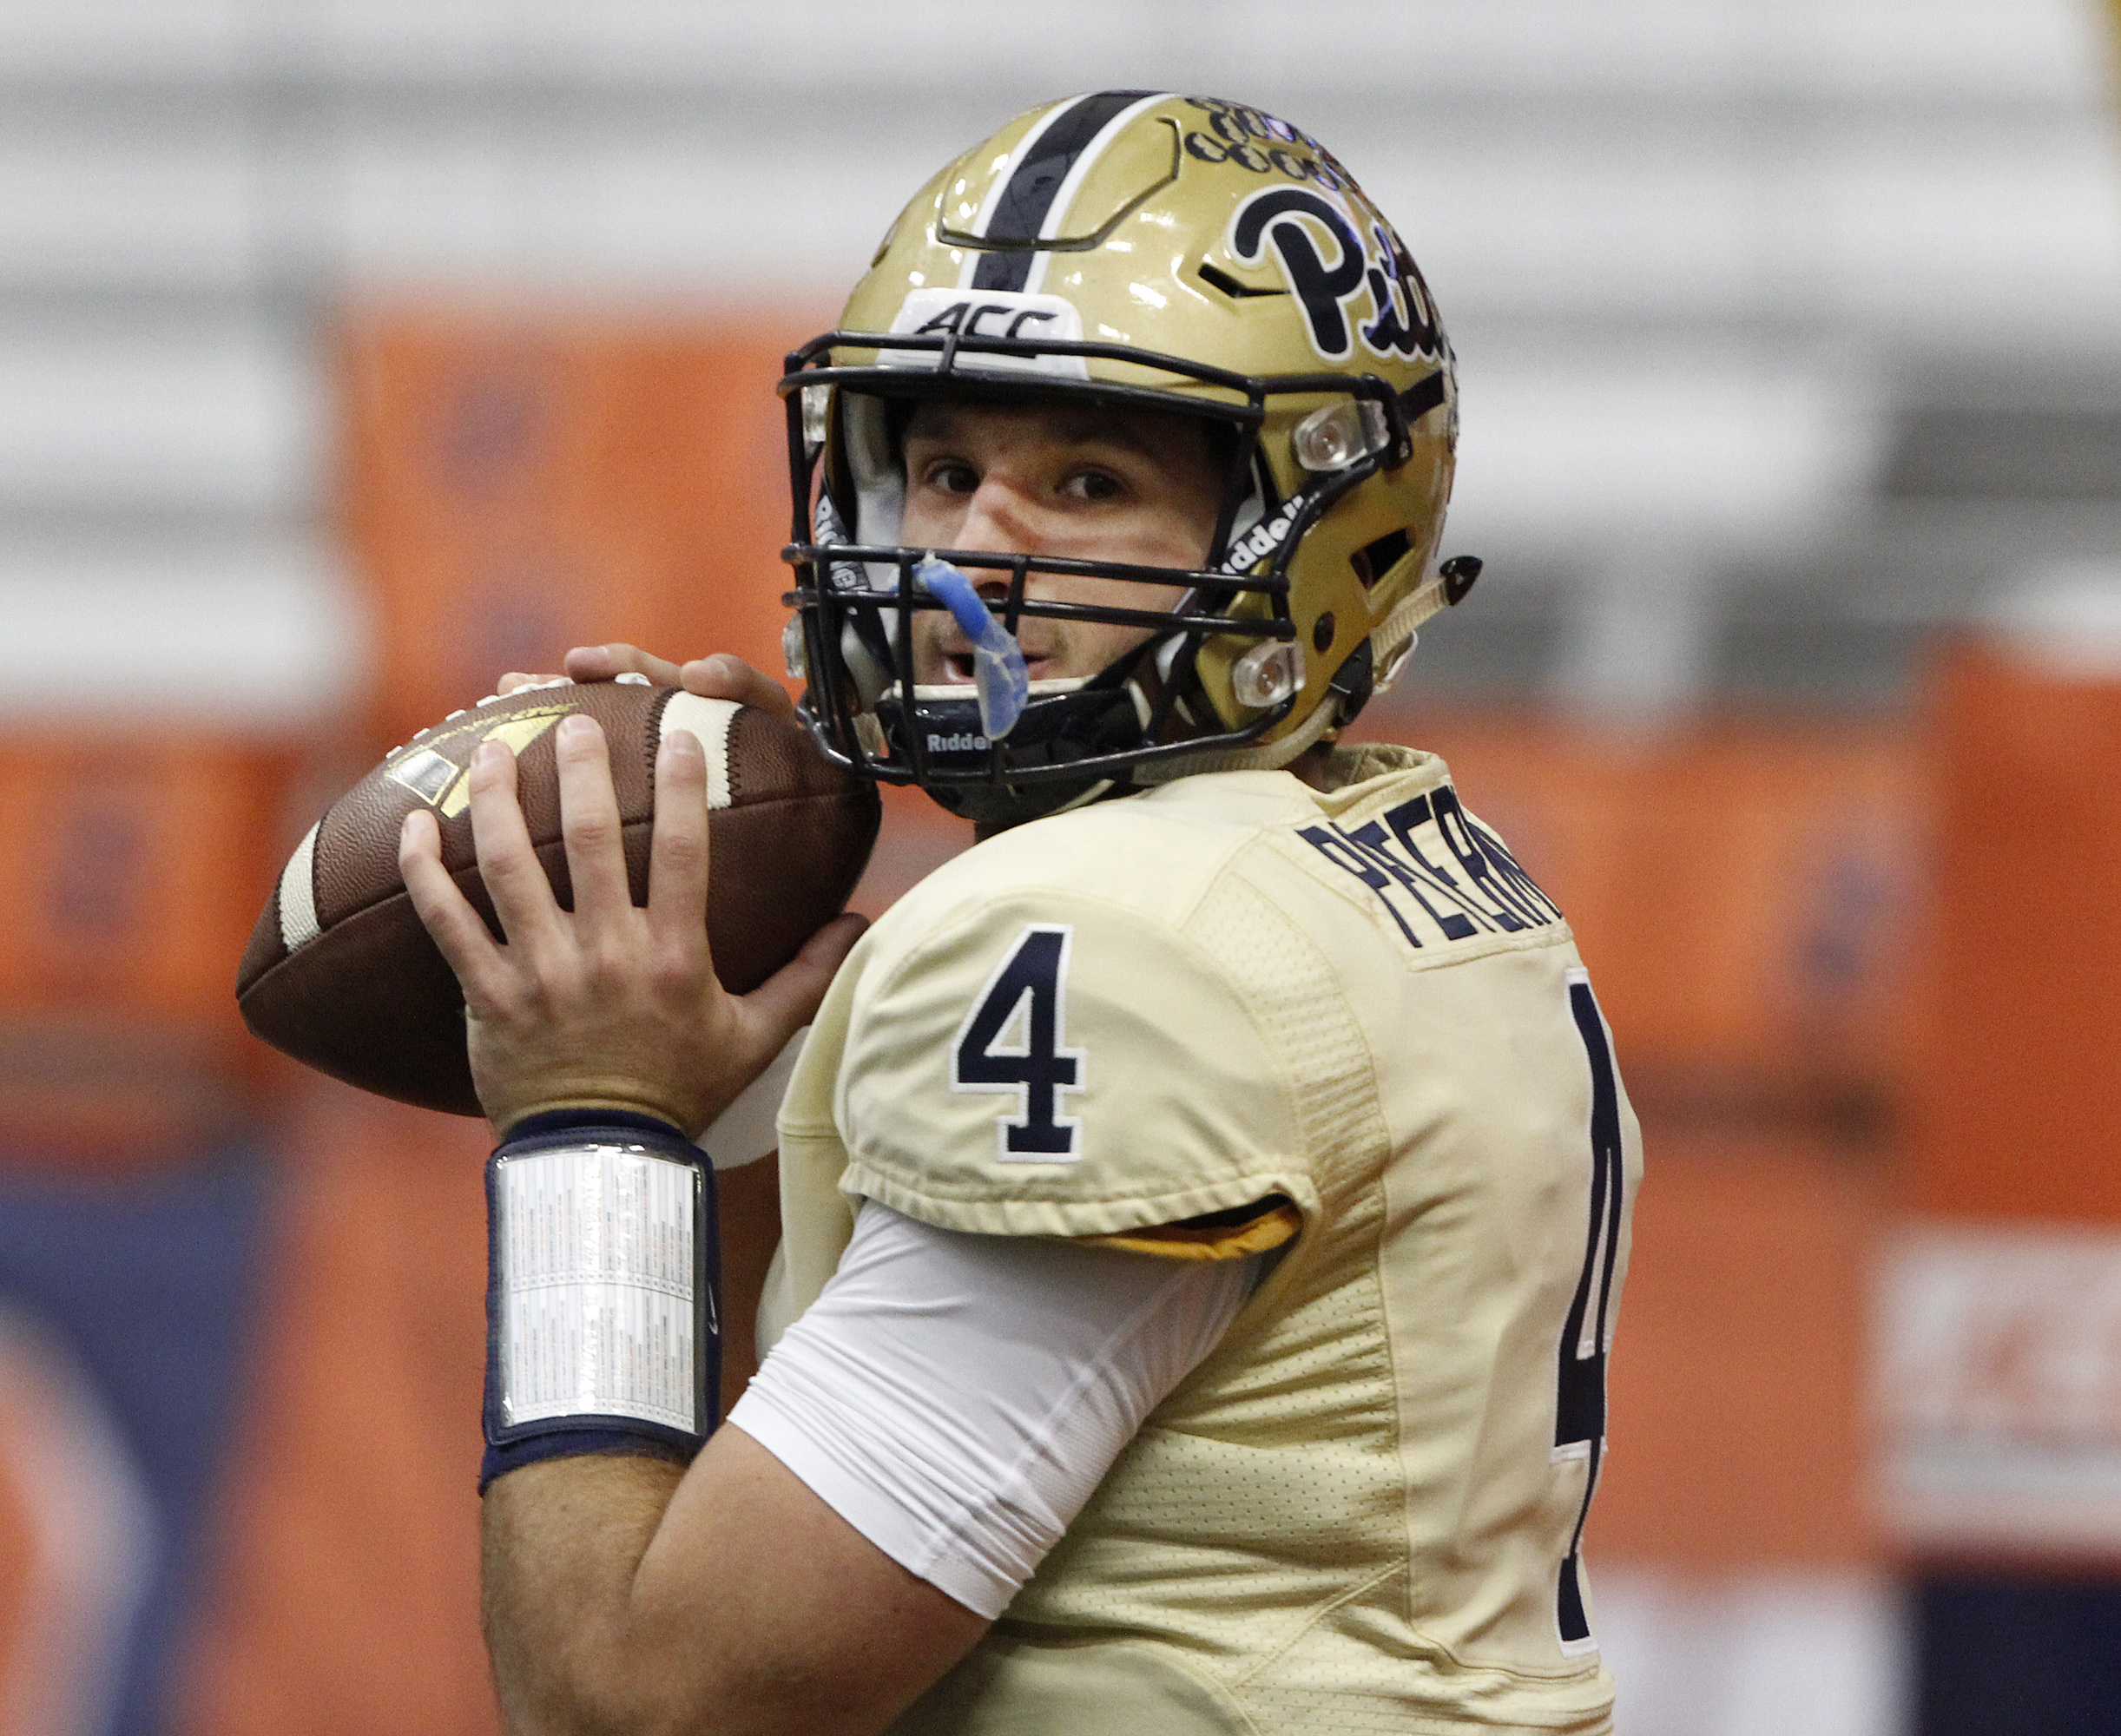 FILE - In this Oct. 24, 2015, file photo, Pittsburghs Nate Peterman warms up before an NCAA college football game against Syracuse in Syracuse, N.Y. The Panthers began the Pat Narduzzi era with a promising 8-5 mark last fall. Enthusiasm surrounding the pr